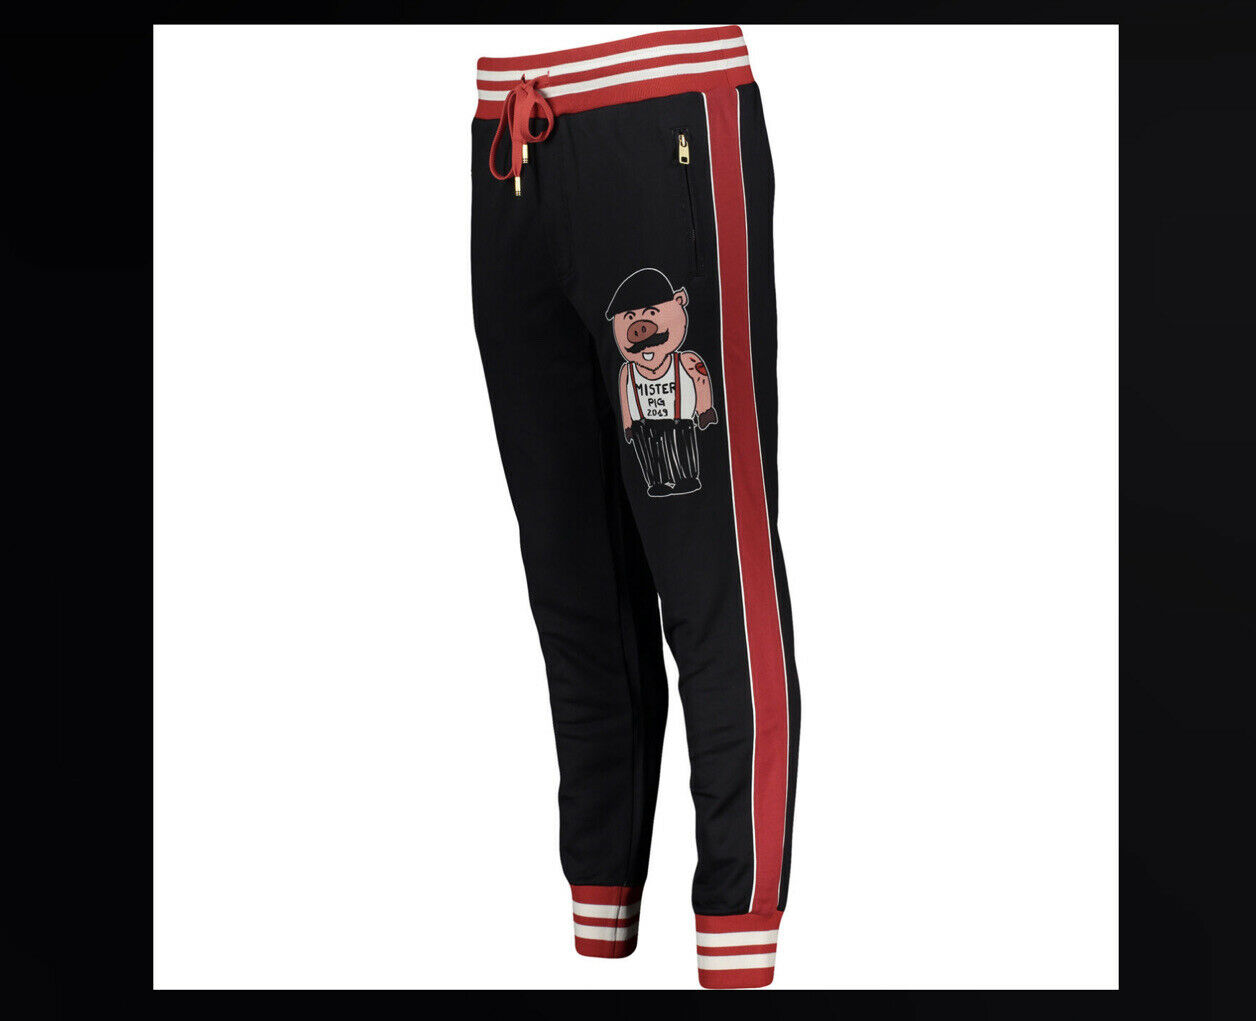 DOLCE & GABBANA Black MISTER PIG PRINTED Joggers Pants Size S NEW + TAG